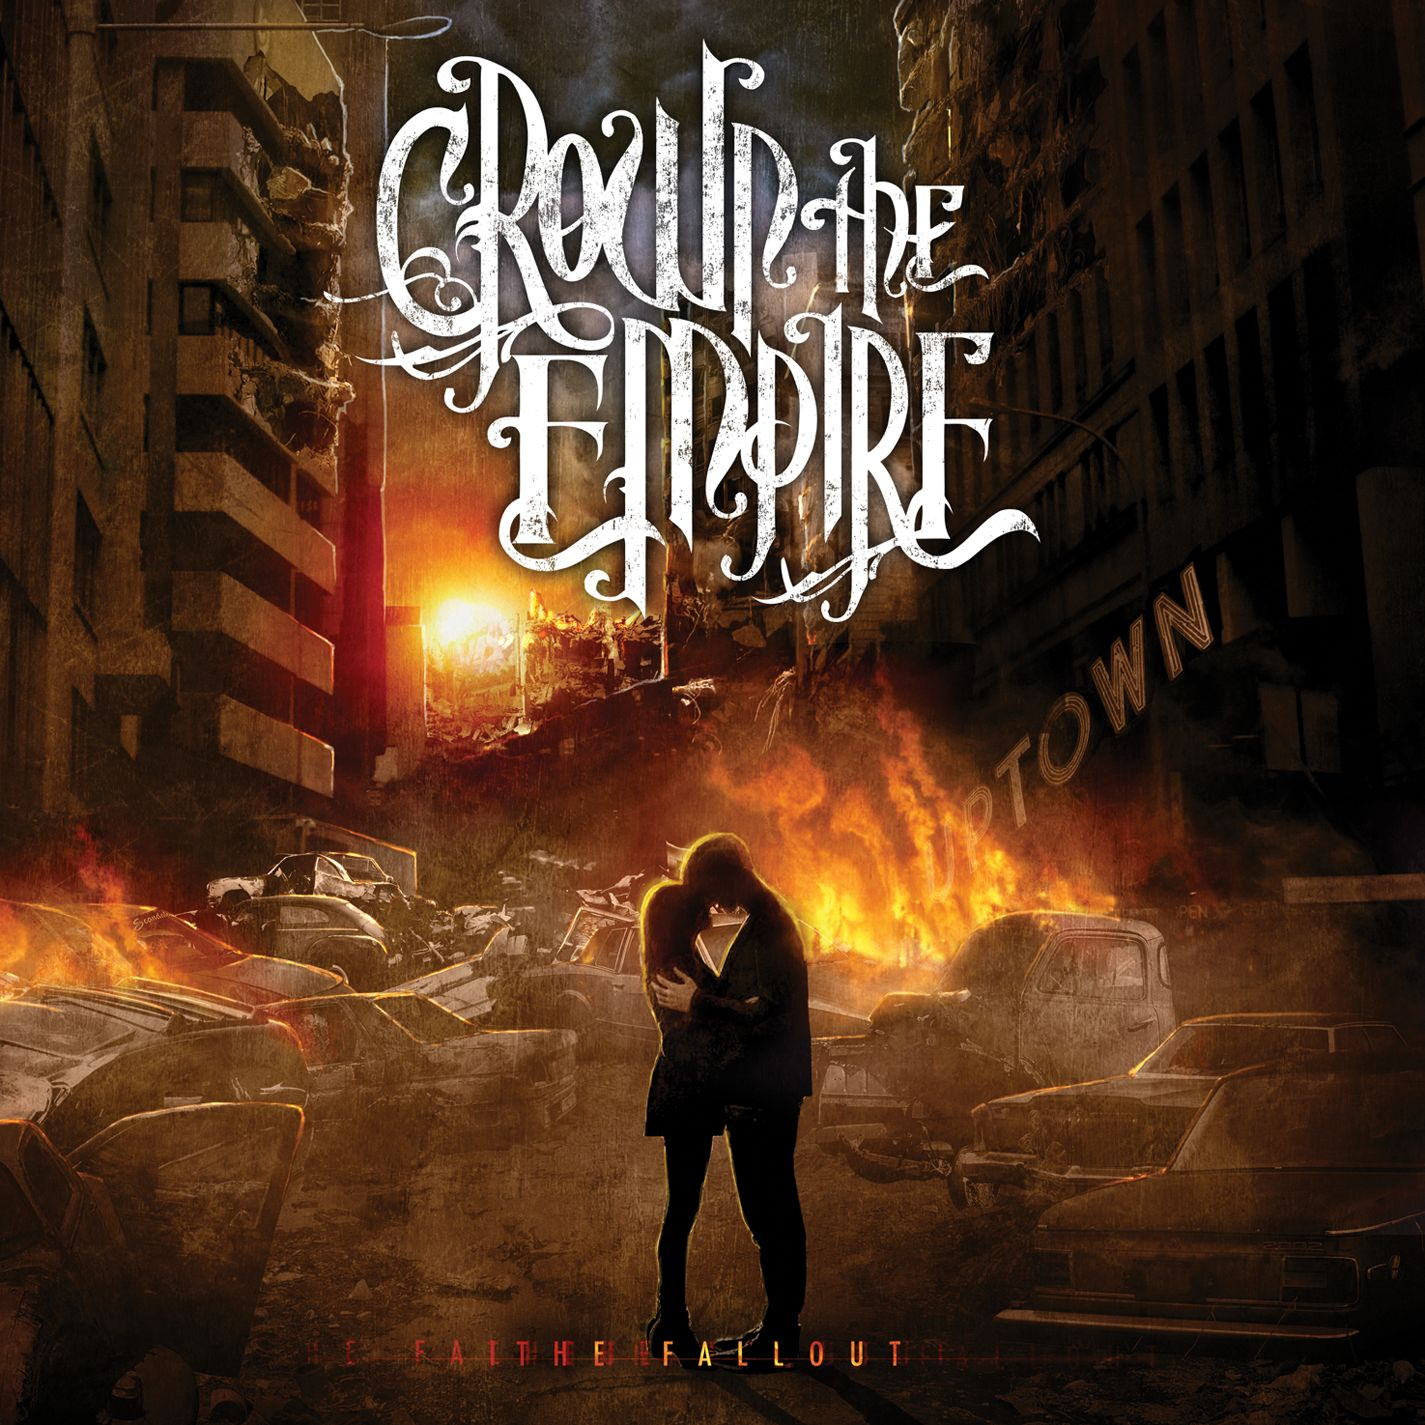 Crown the Empire Radio: Listen to Free Music & Get The